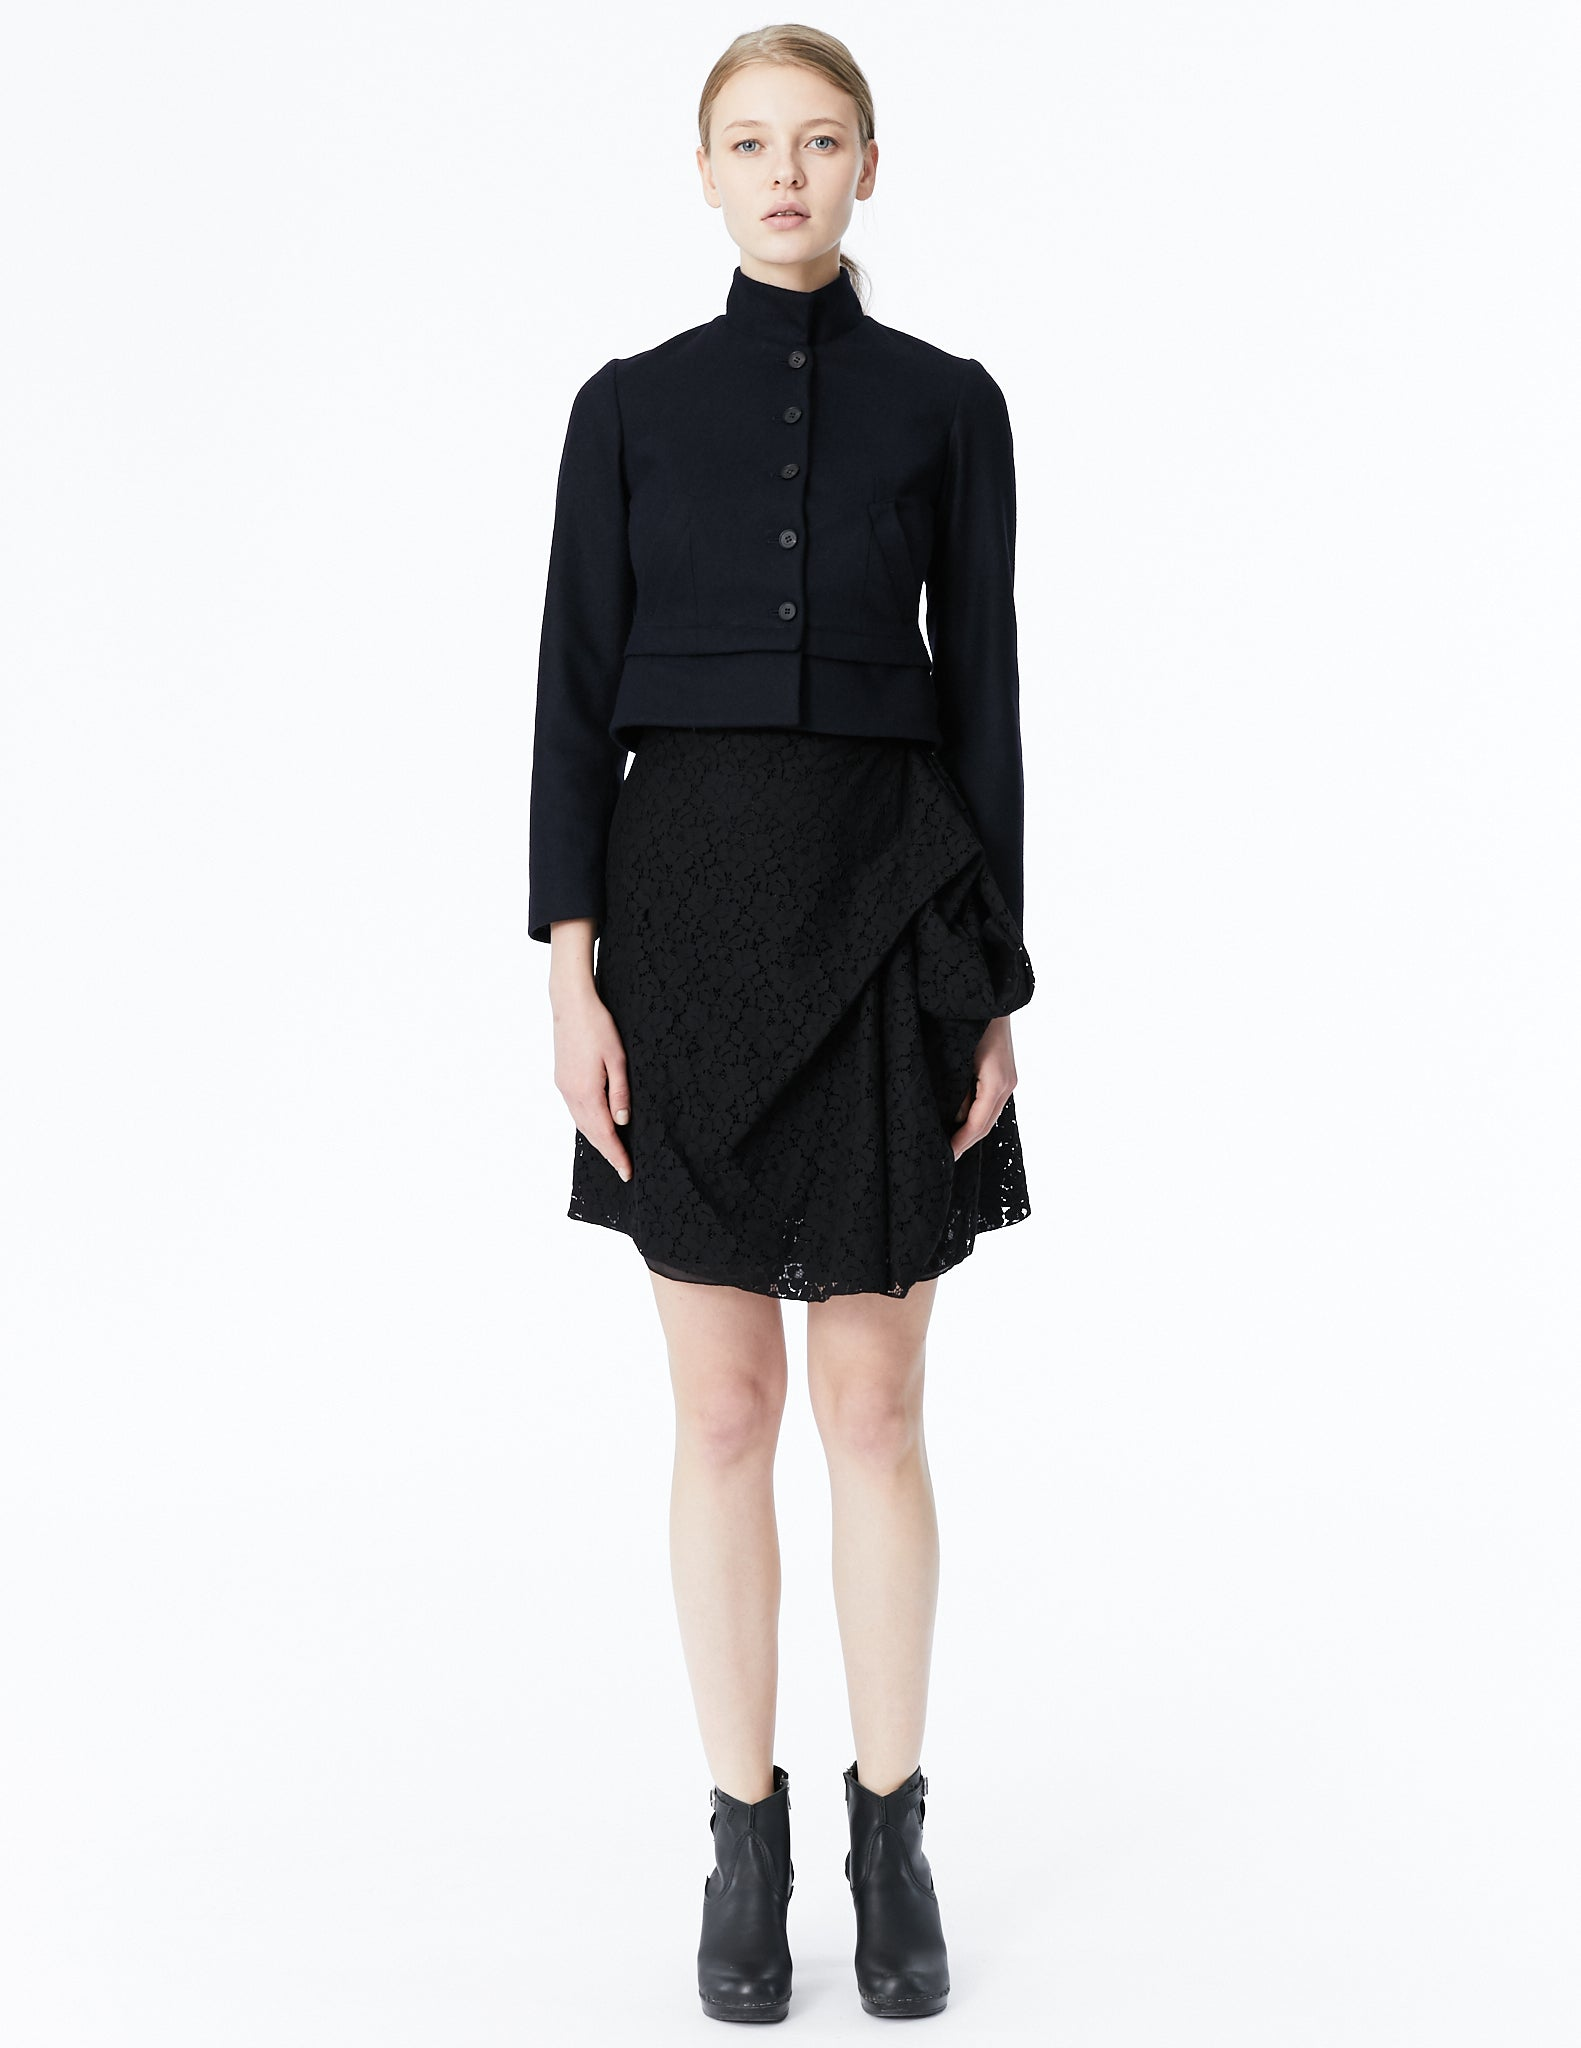 morgane le fay short fitted jacket with mandarin collar and mini peplum